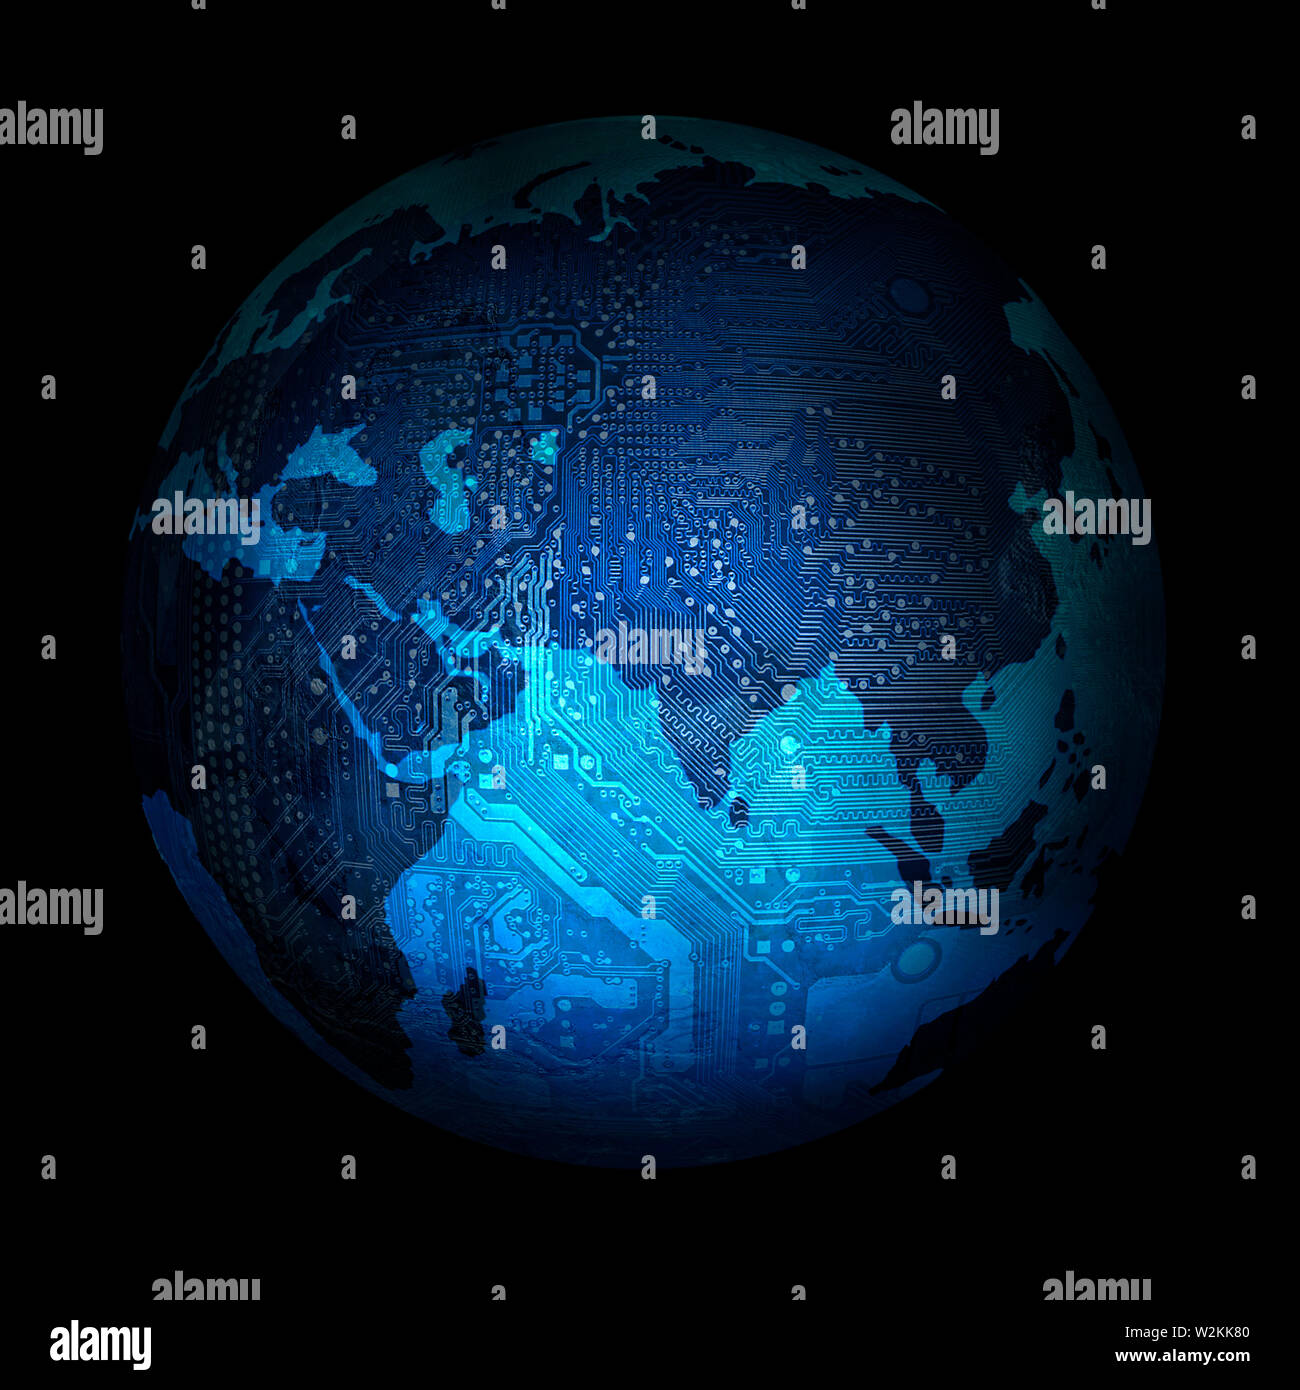 electronic digital planet earth on a black background - Stock Image